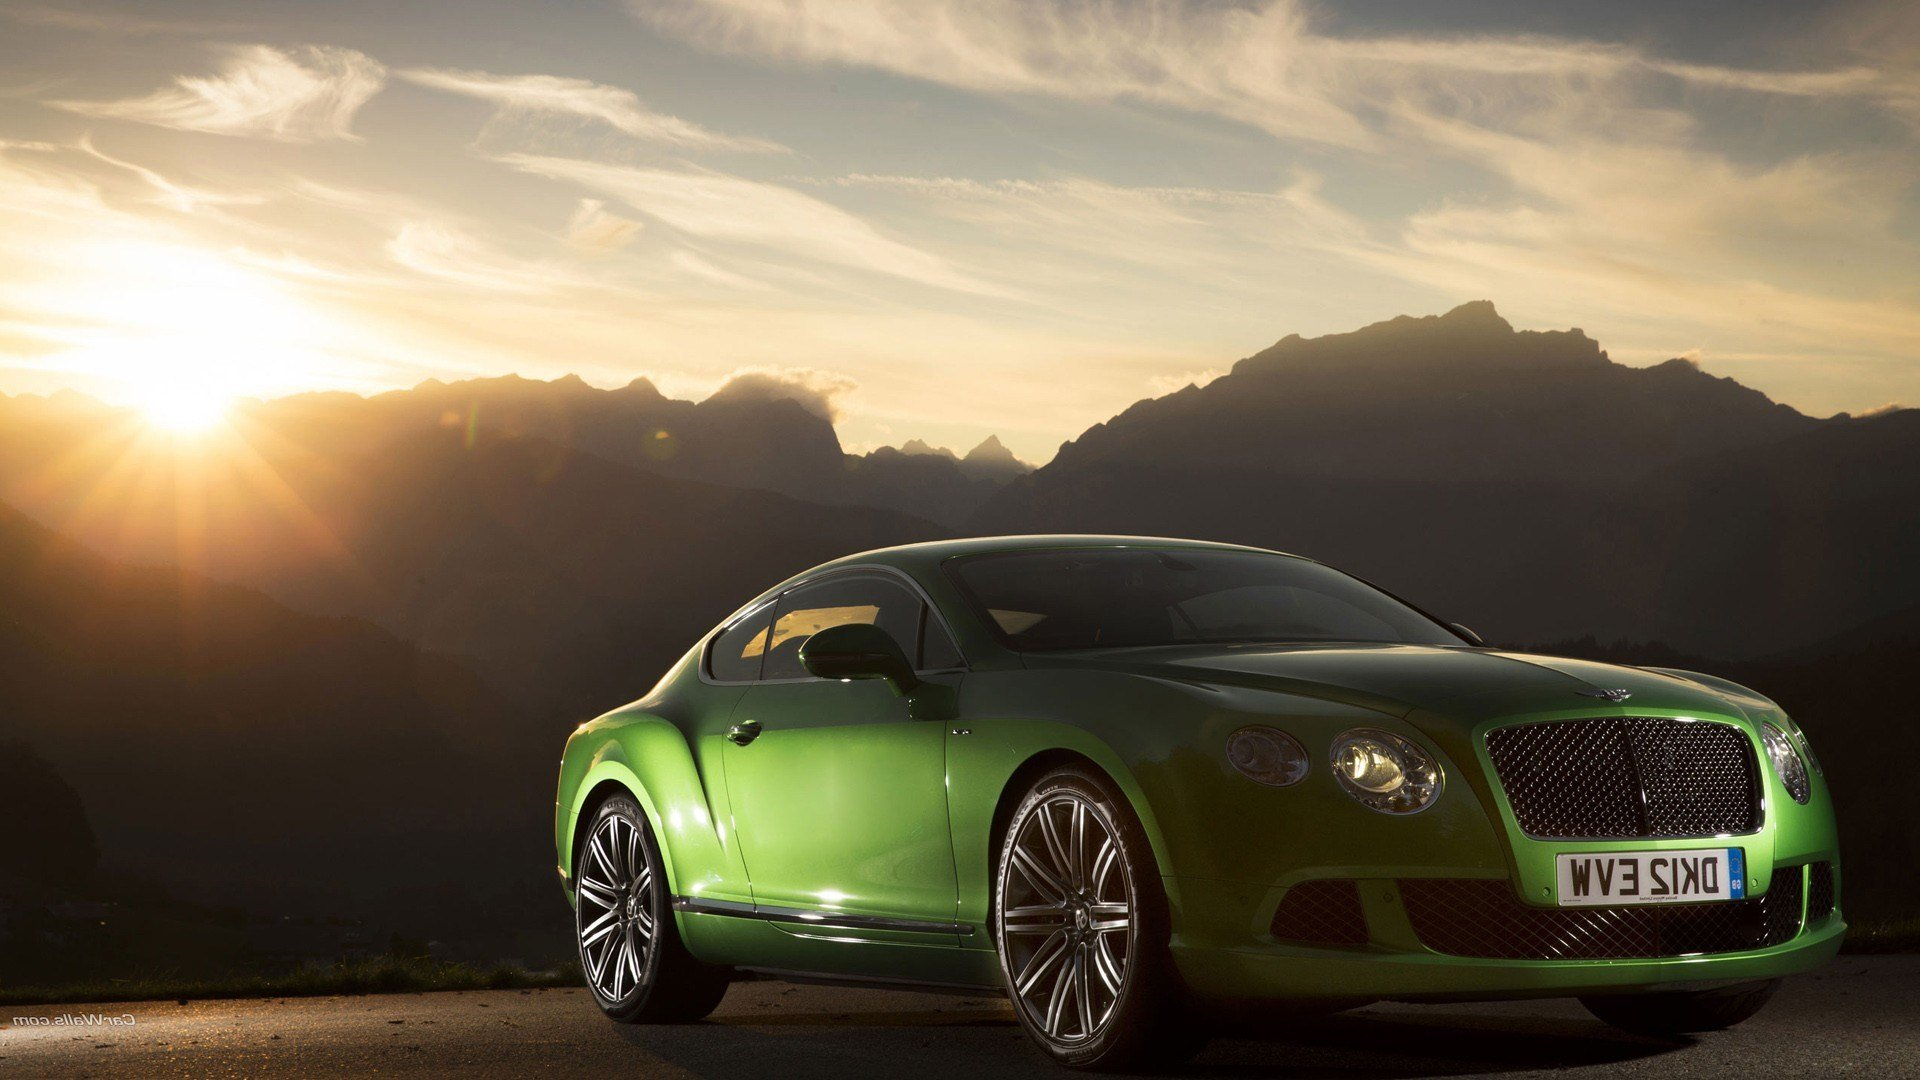 Latest 2013 Bentley Continental Gt Speed 2 Wallpaper Hd Car Free Download